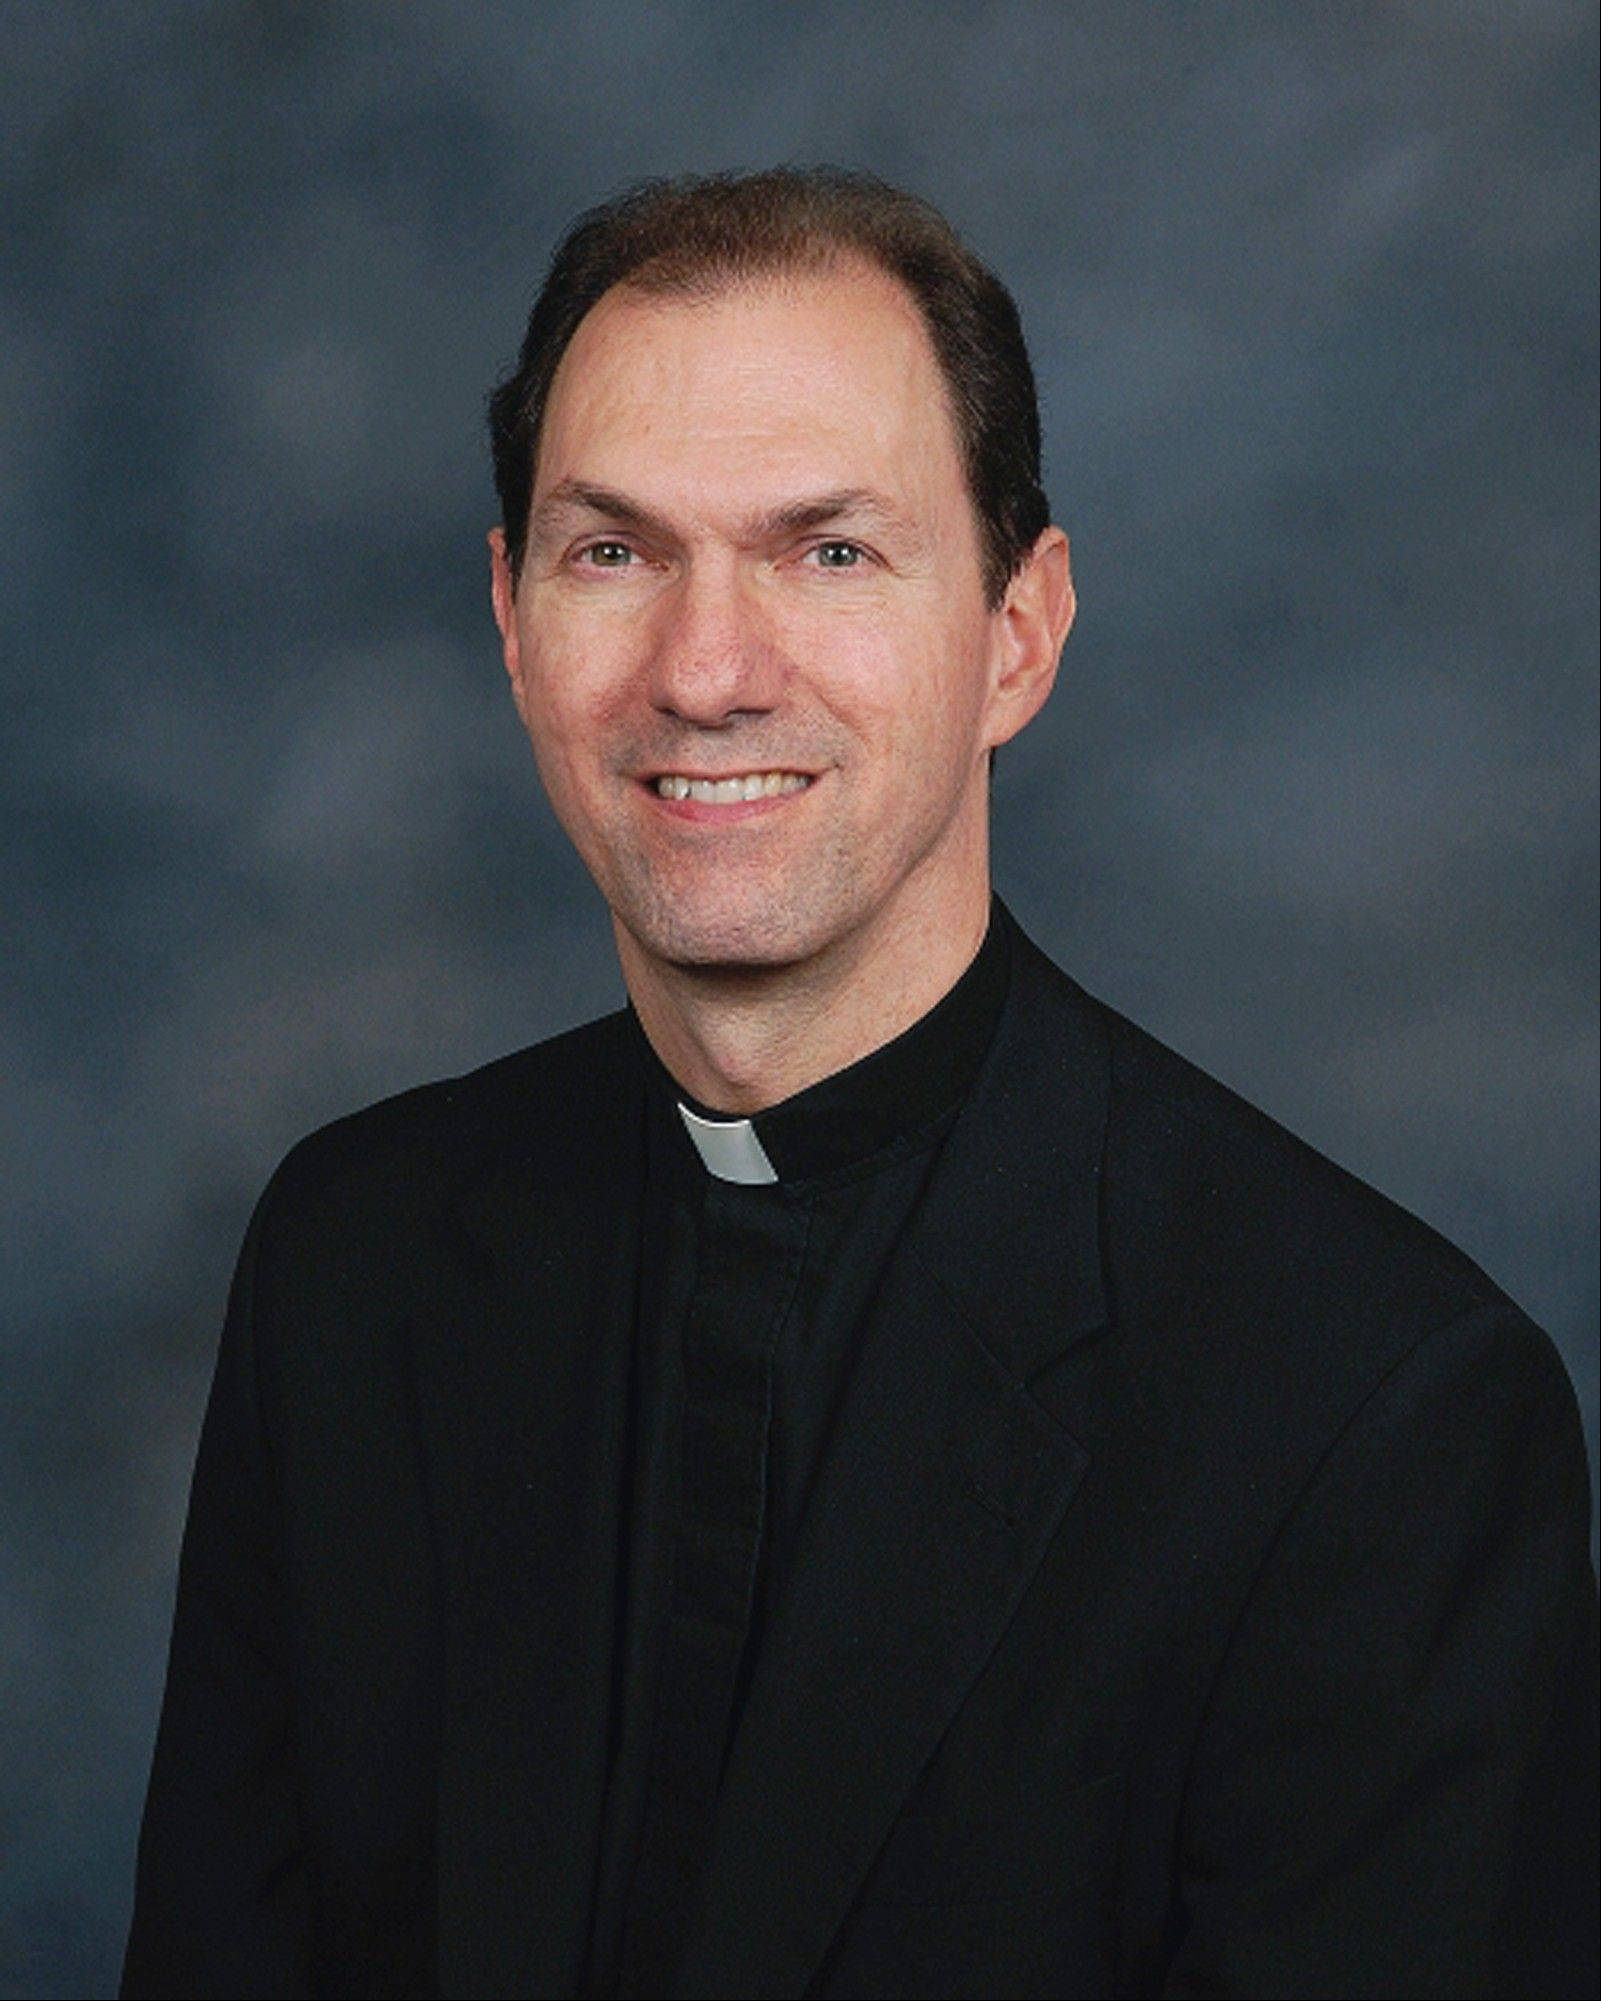 John Thomas Folda, bishop of the Fargo Catholic Diocese.